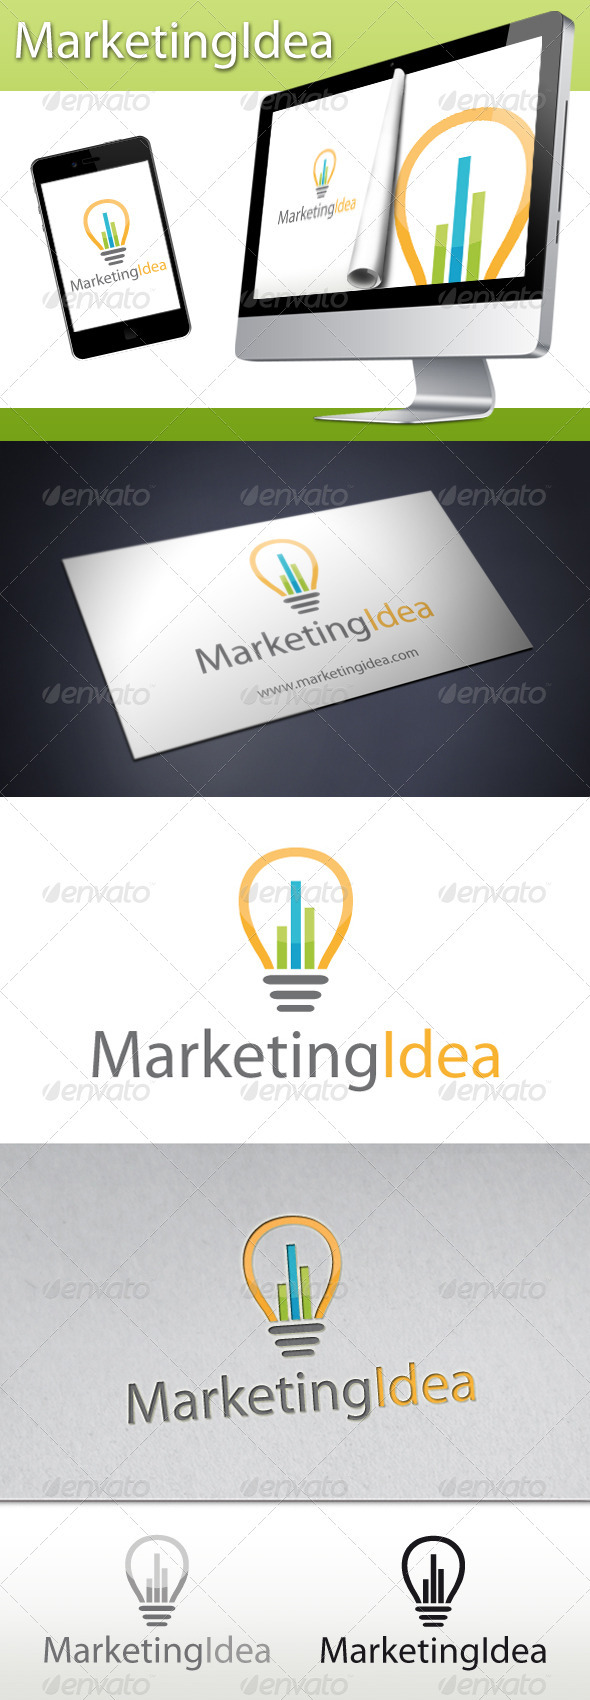 Marketing Idea Logo - Symbols Logo Templates